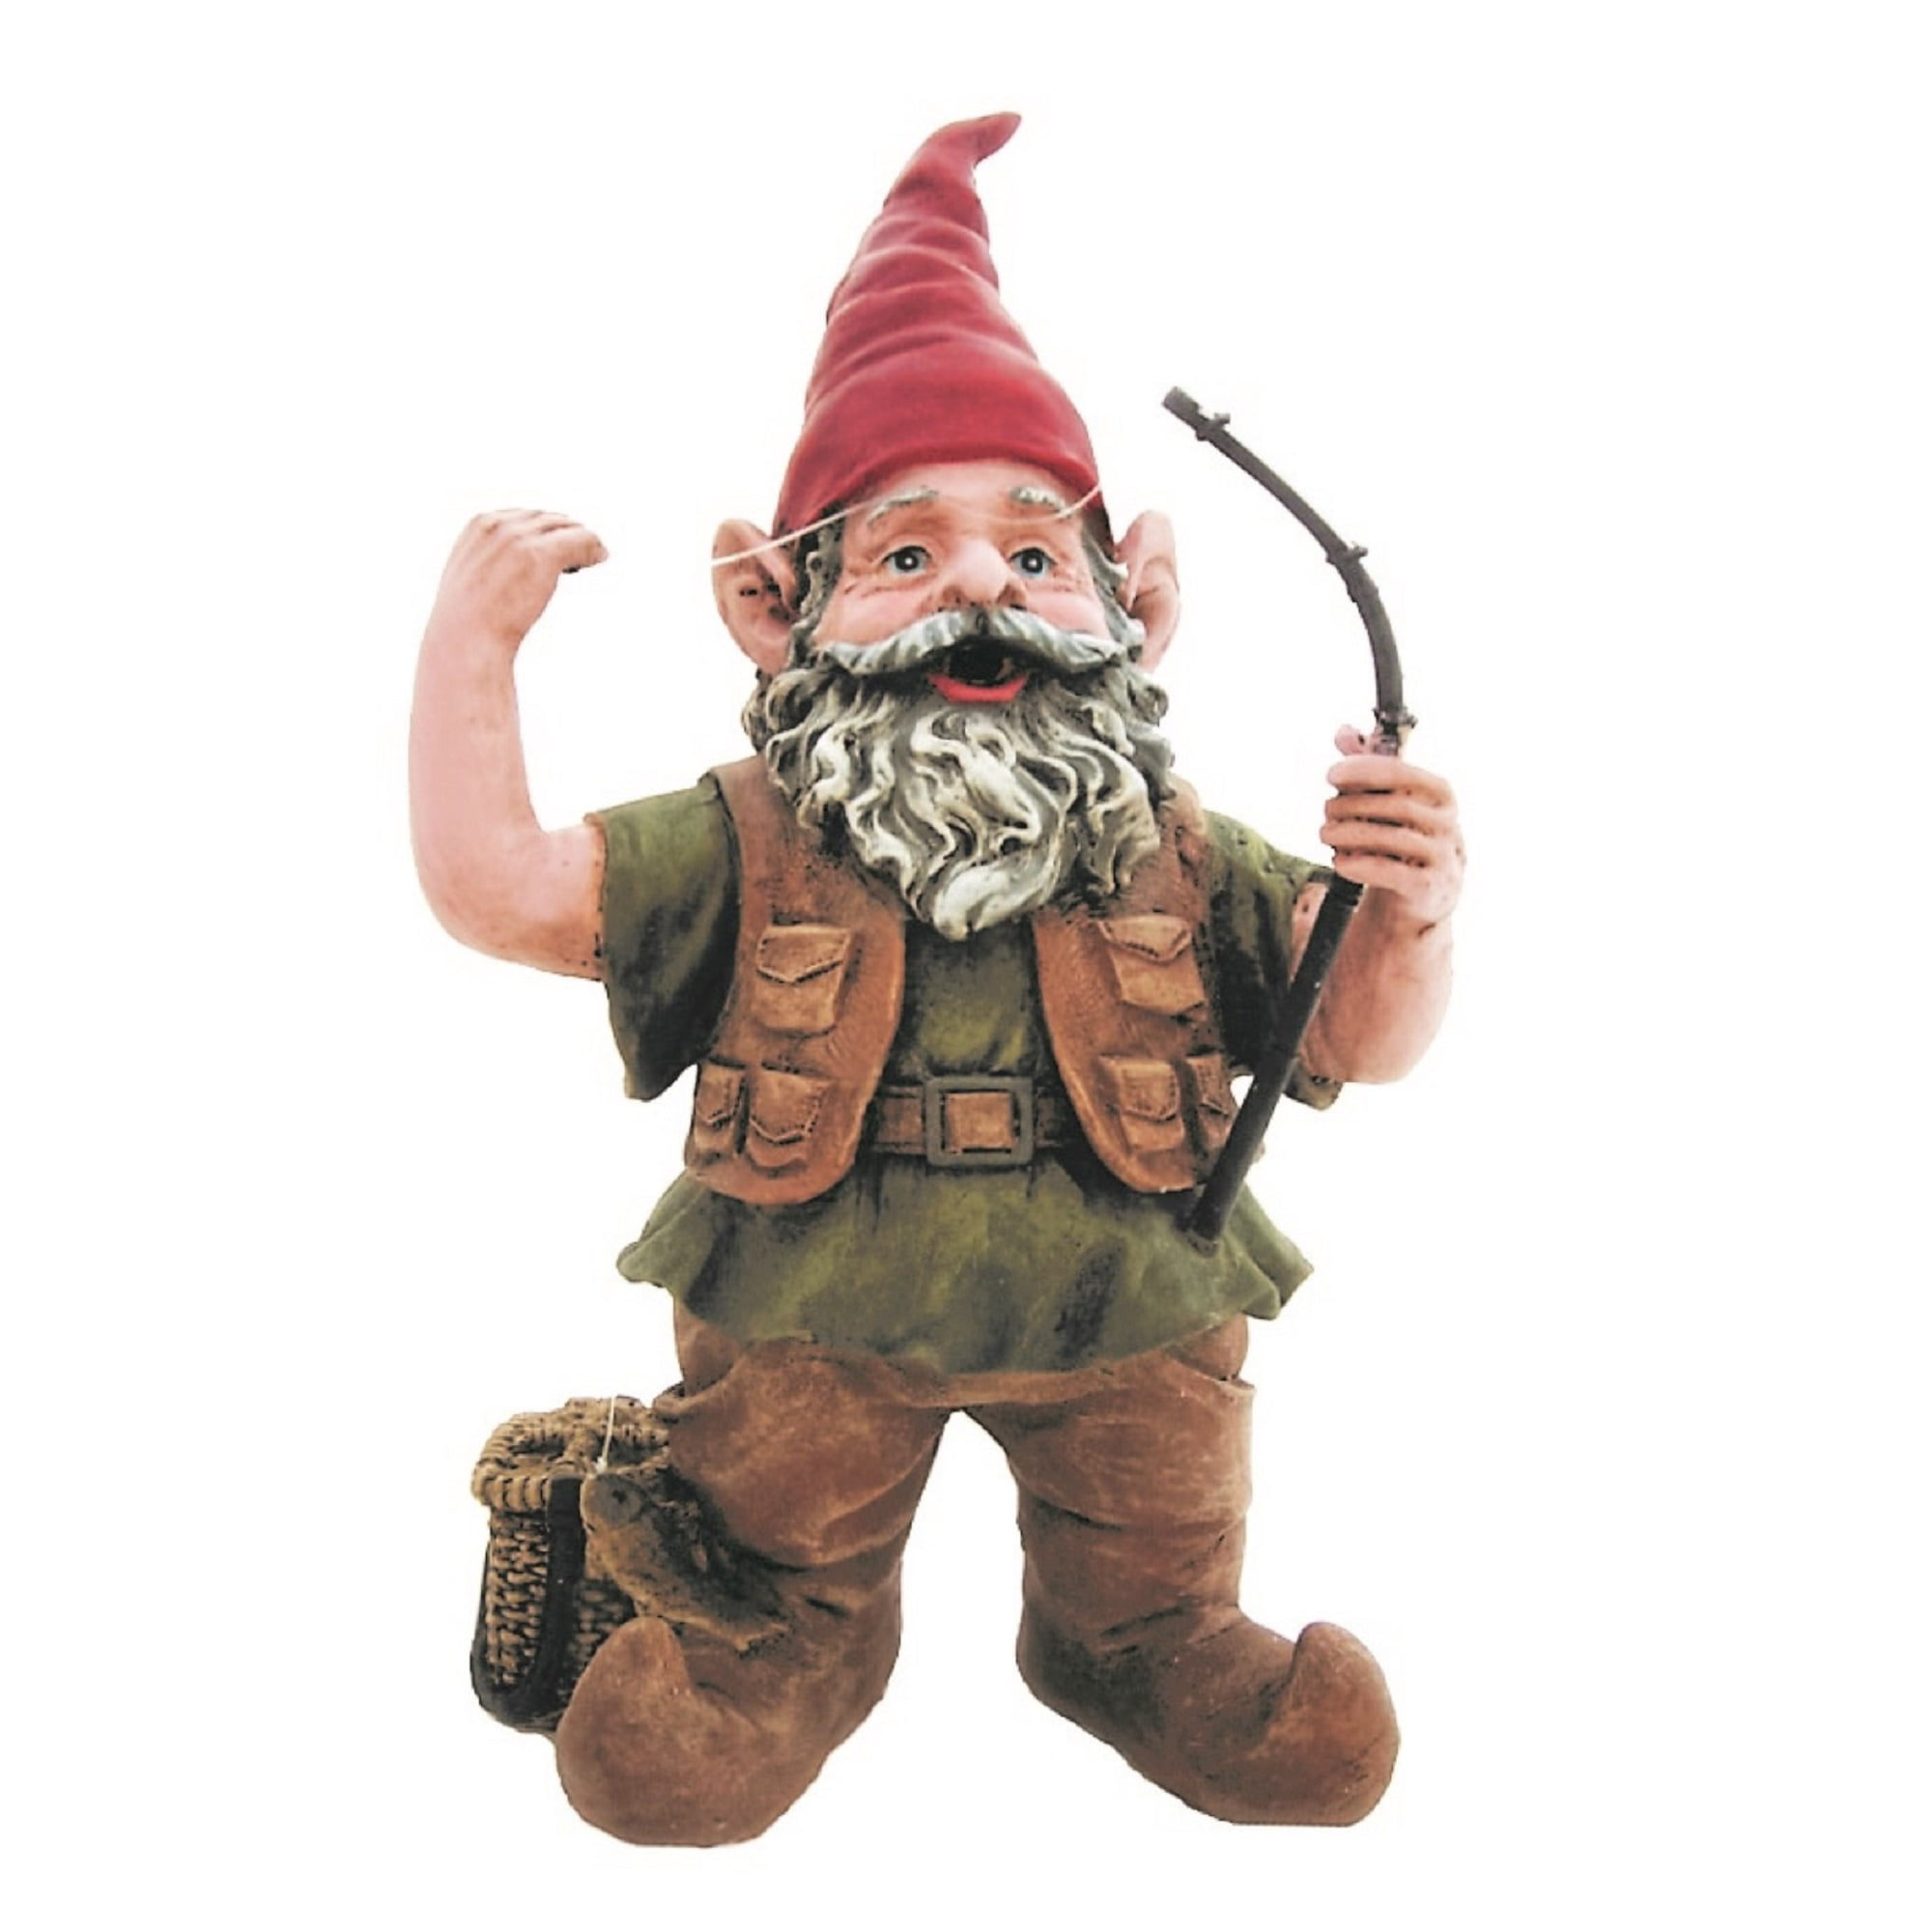 Gnome Garden: Homestyles Fisherman Gnome Holding Fishing Pole Home